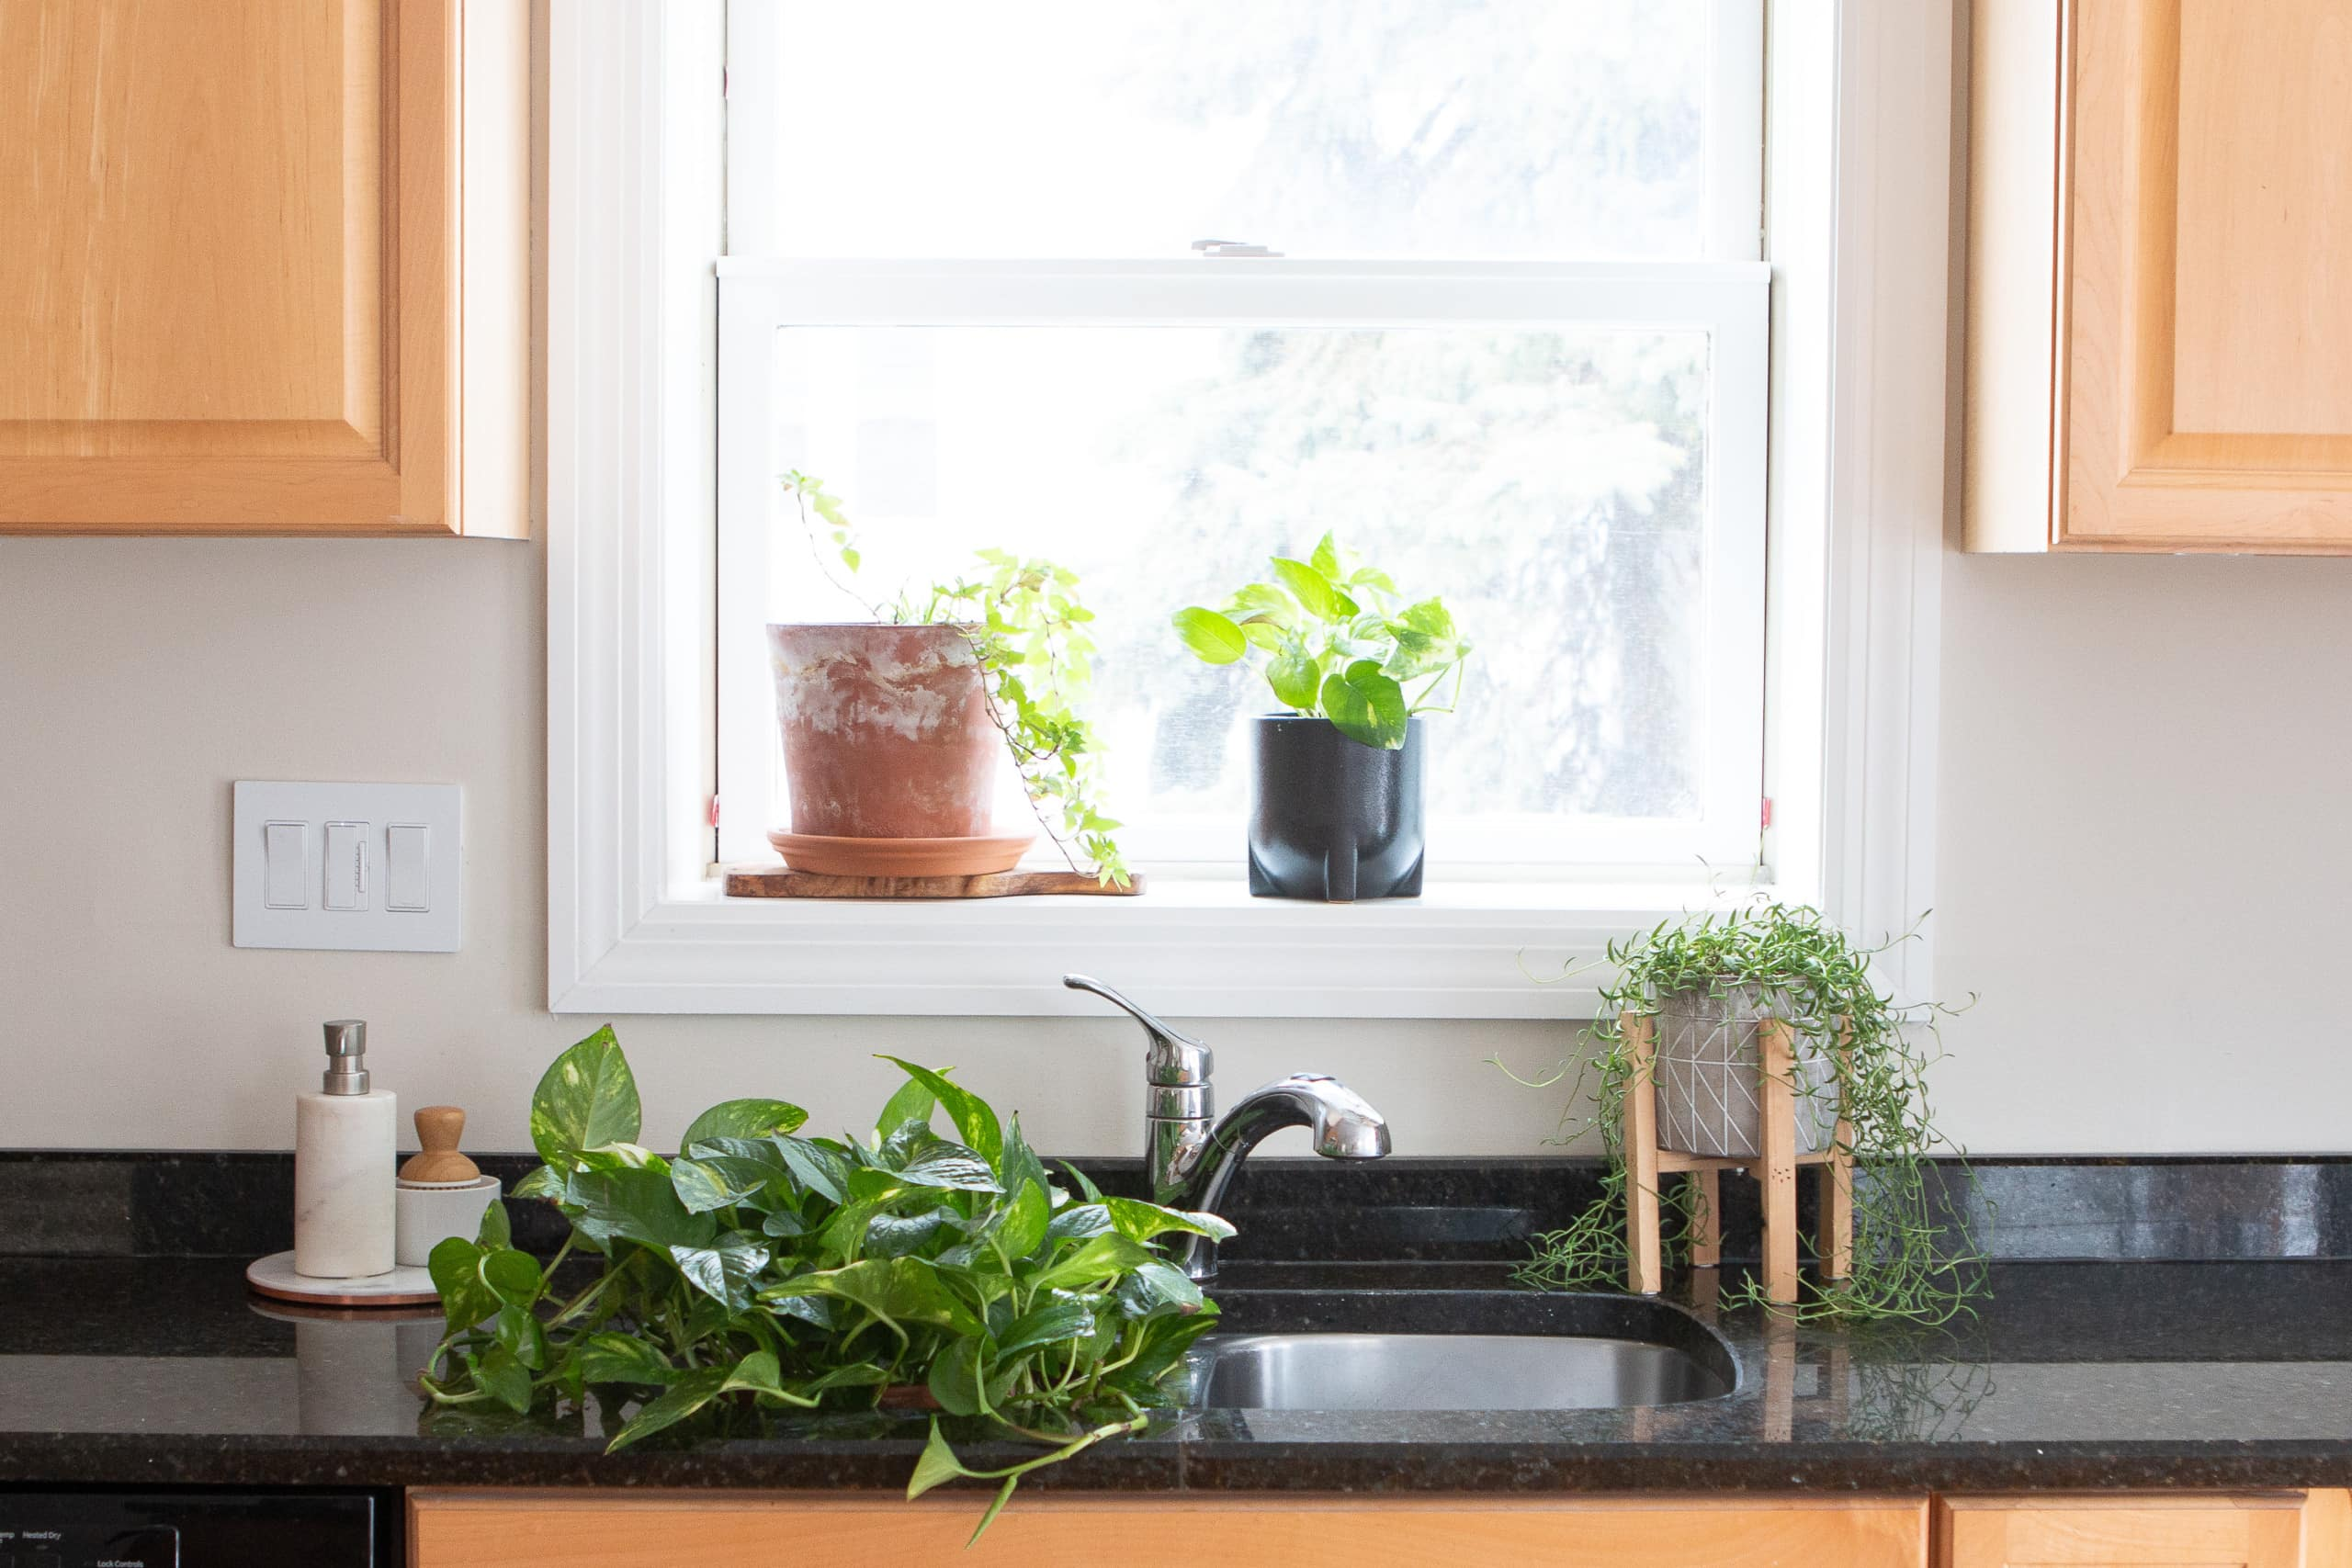 My favorite indoor plants for my house